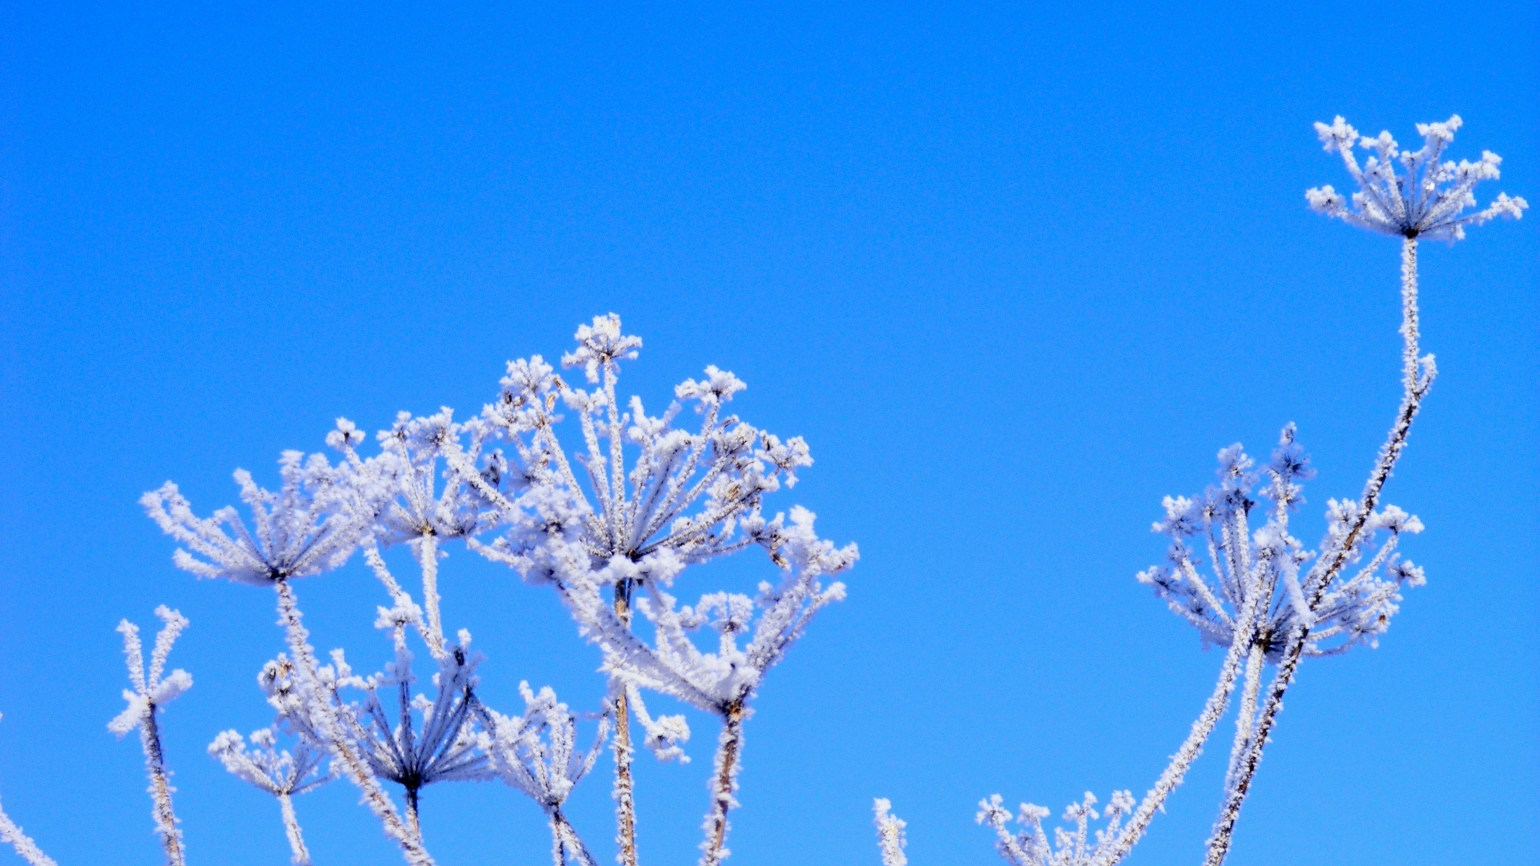 Frost on plants against a bright blue sky